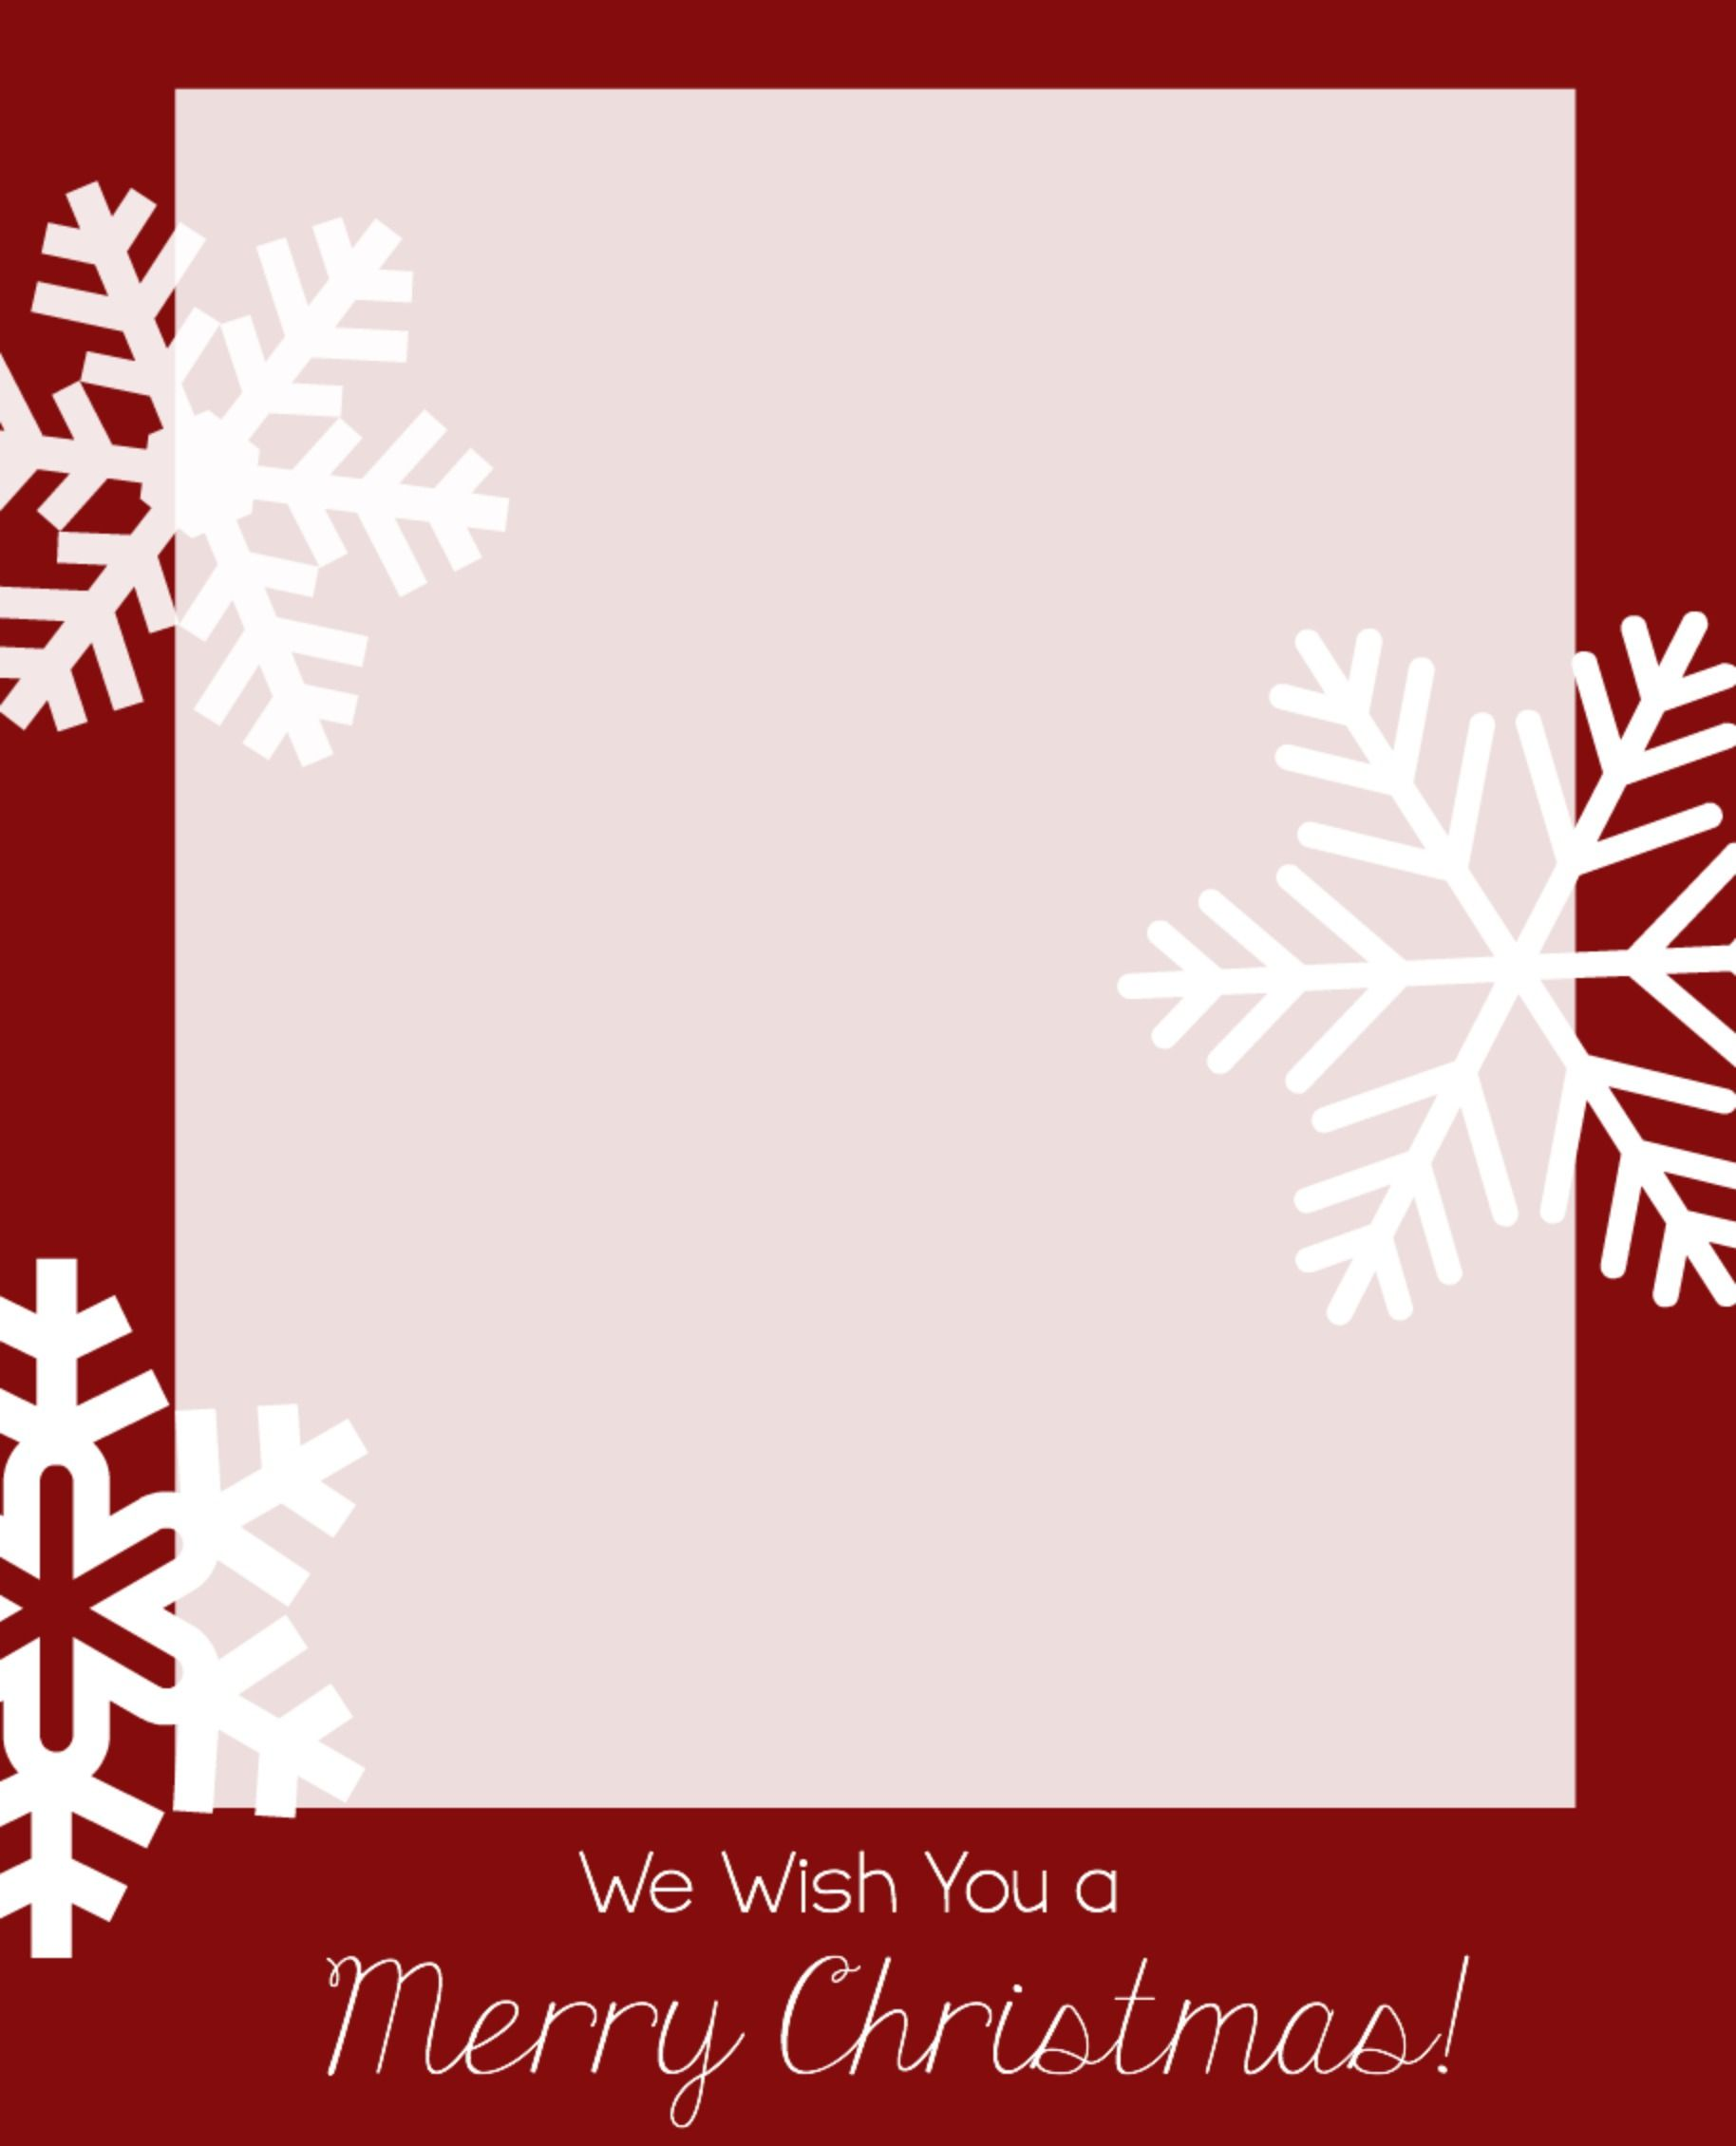 Free Christmas Card Templates.Free Christmas Card Templates Christmas Is In The Air